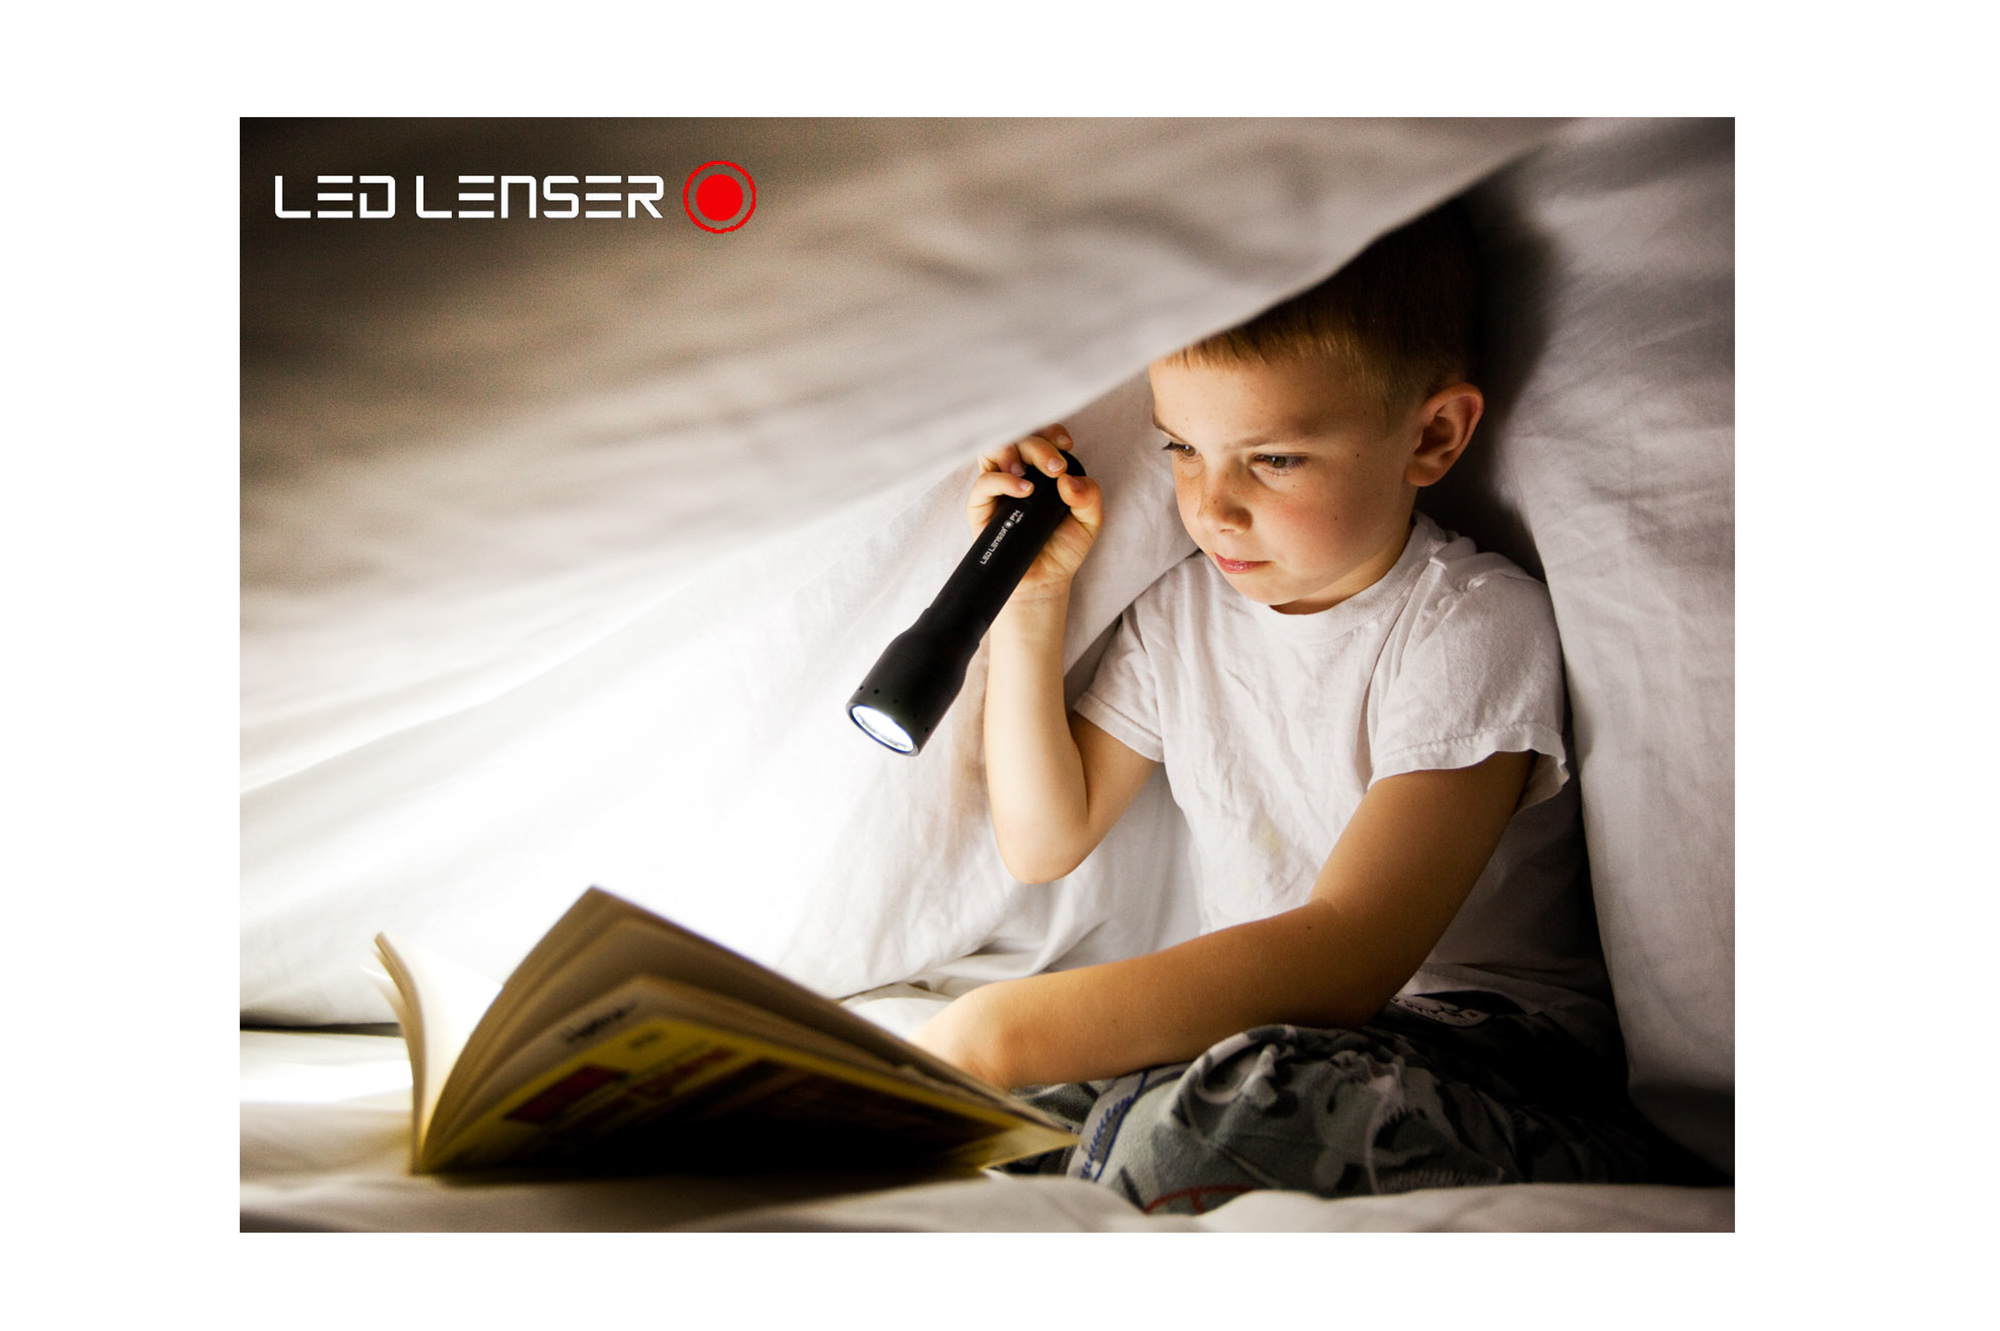 kids-liestyle-outdoor-led-lenser.JPG